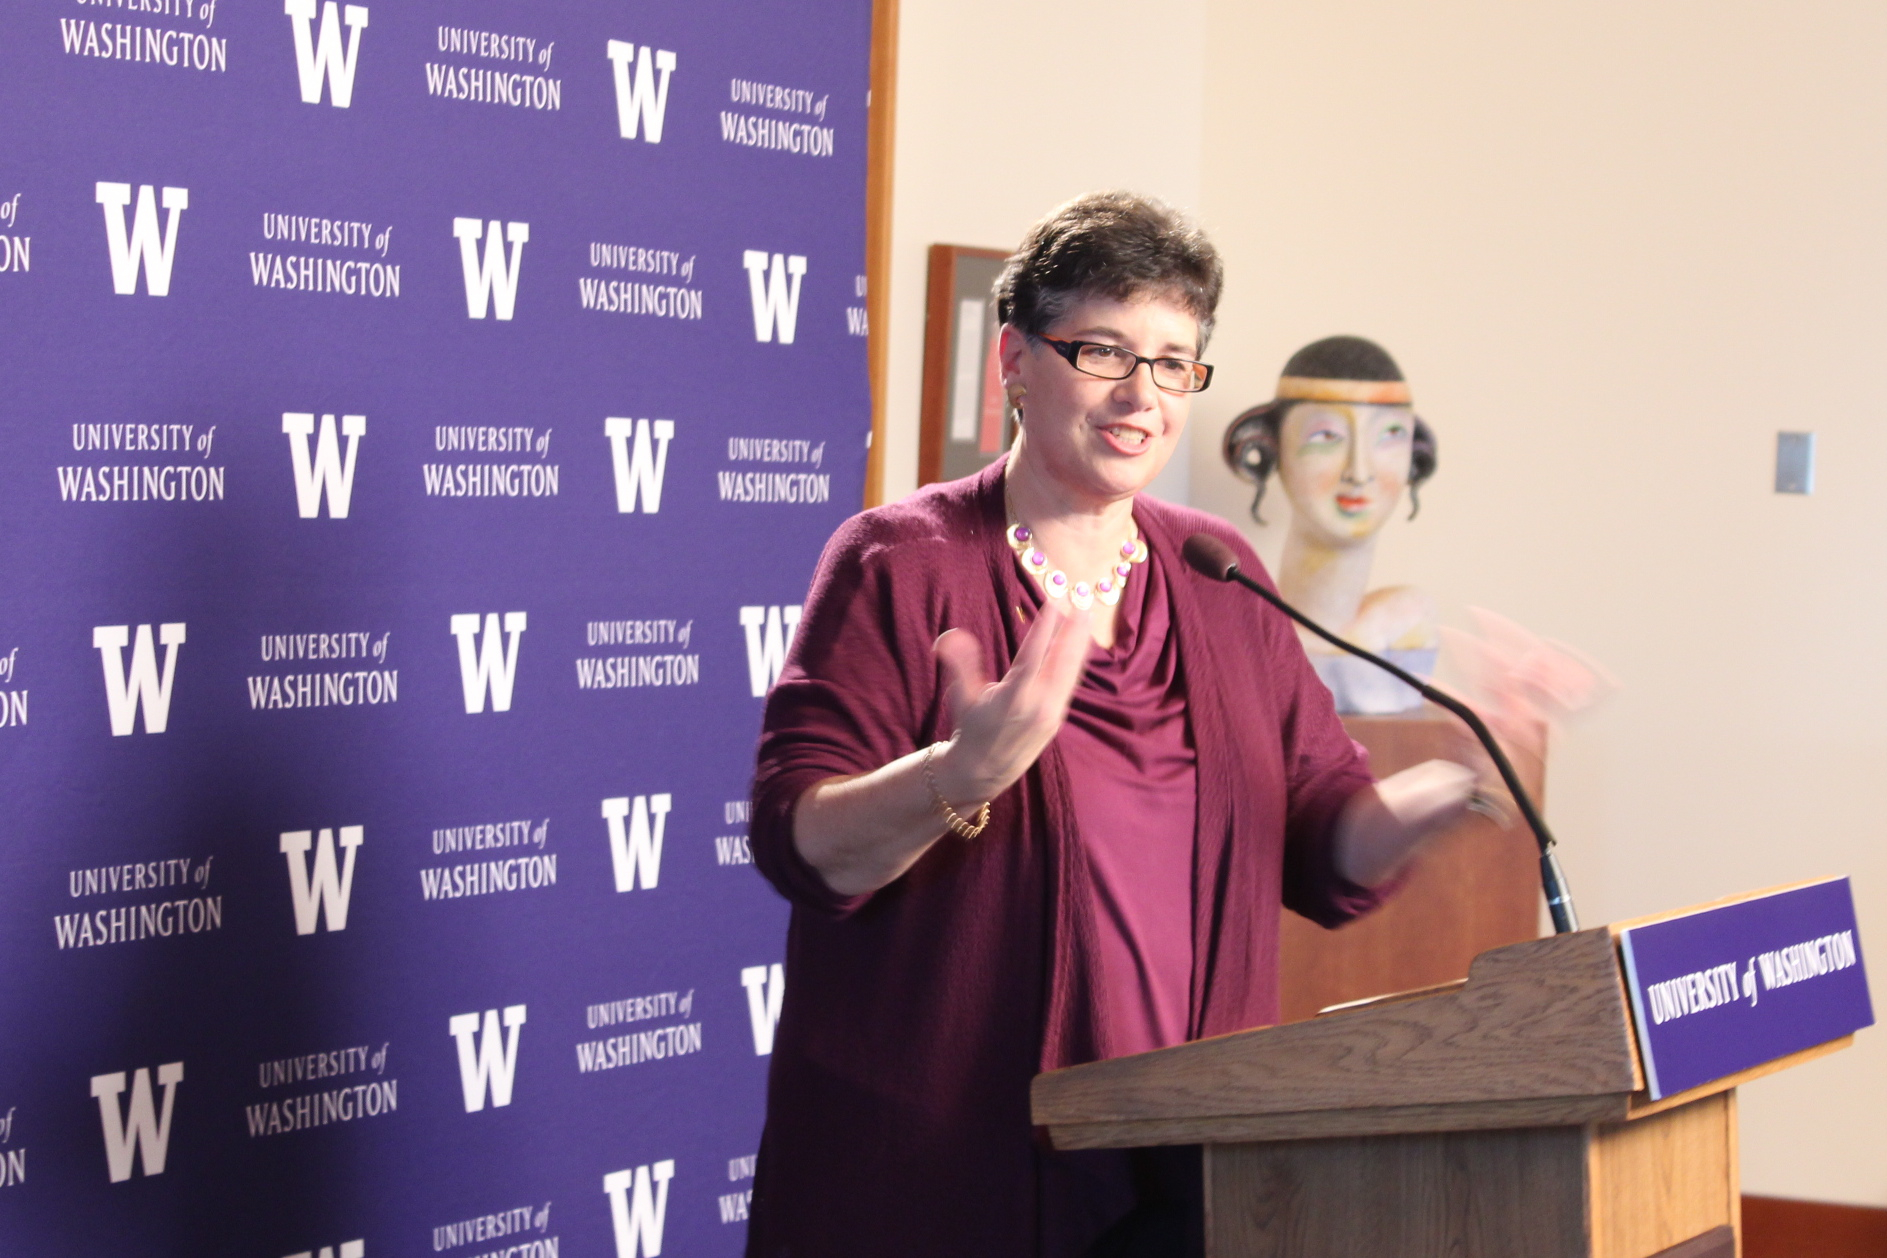 Ana Mari Cauce was selected to be the president of the University of Washington. (Photo by Venice Buhain.)